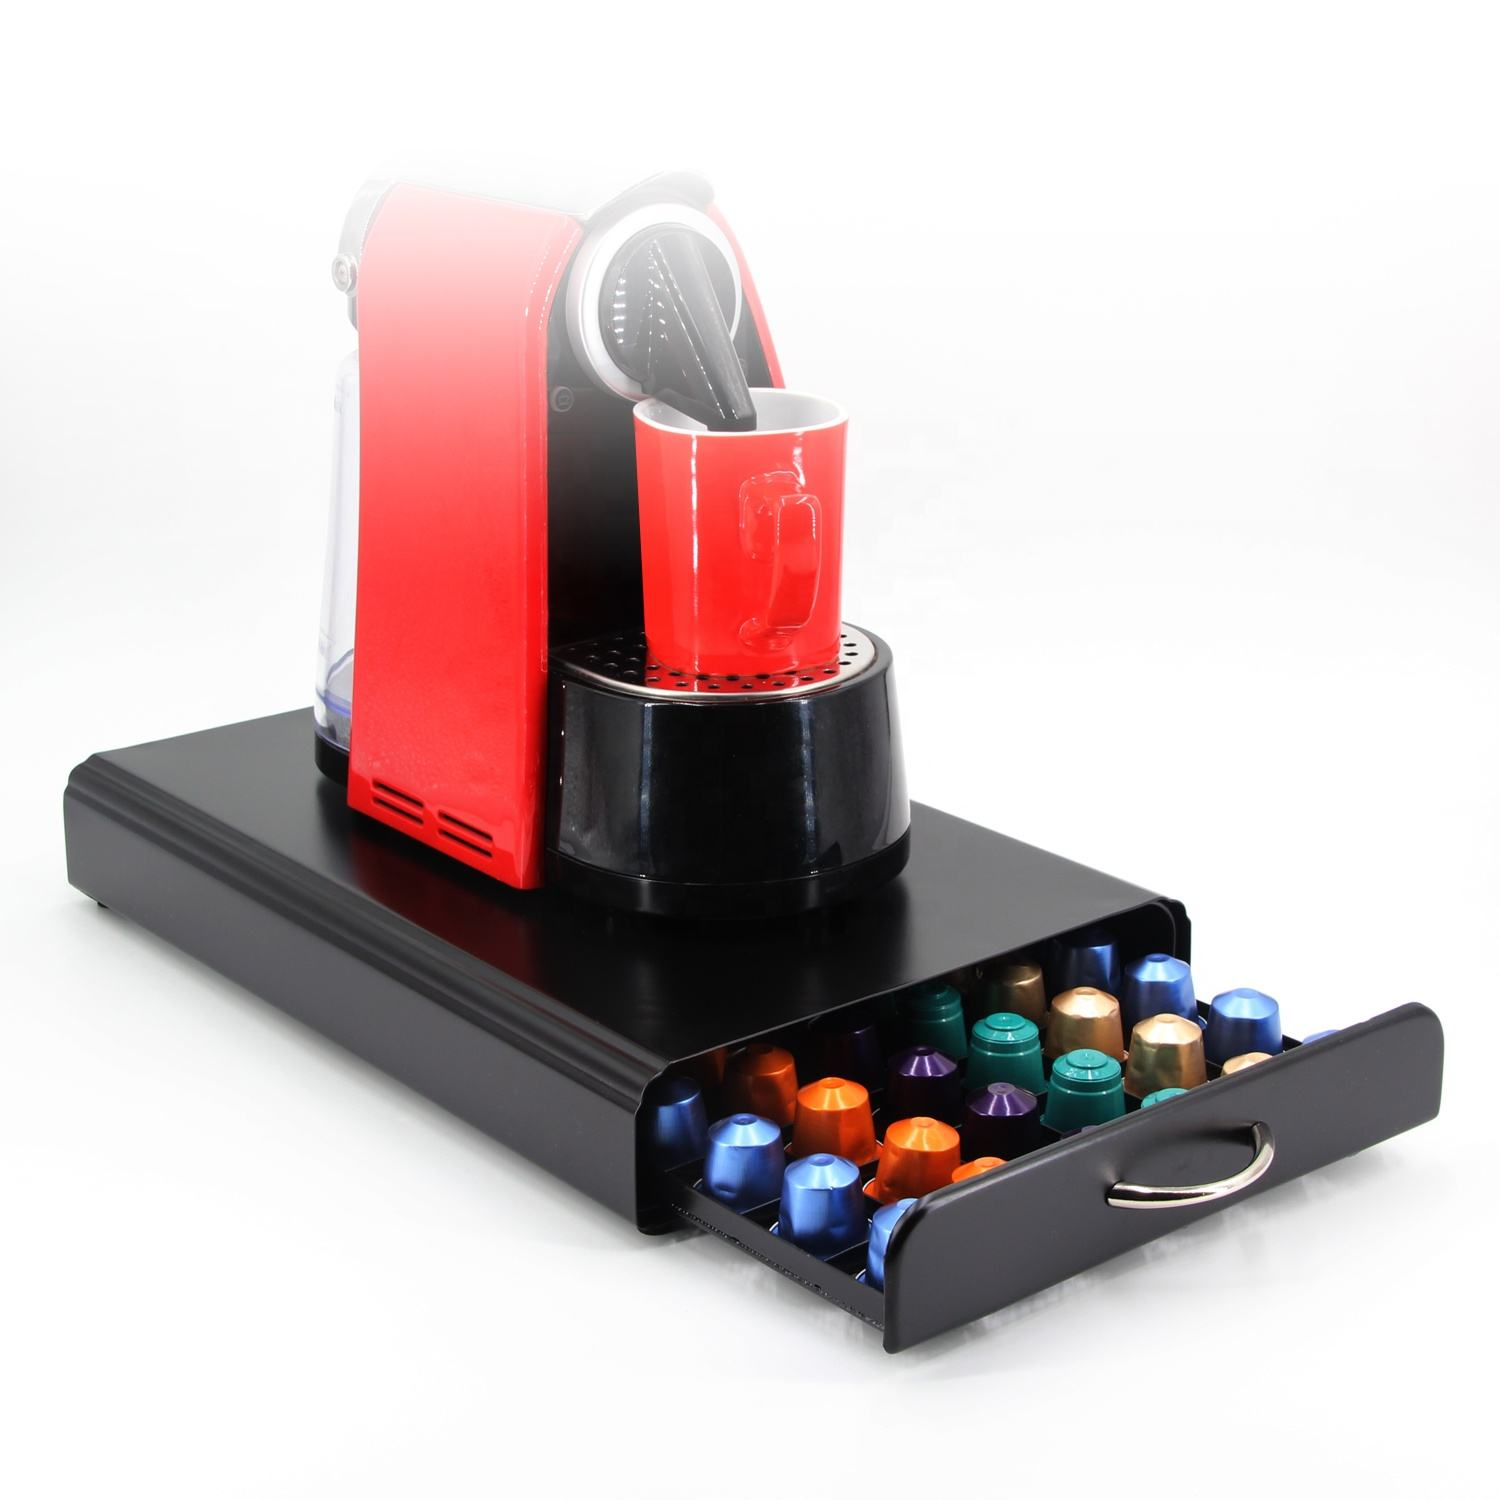 hot selling 60pcs Metal Organizer Nespresso coffee pod storage drawer coffee capsule holder